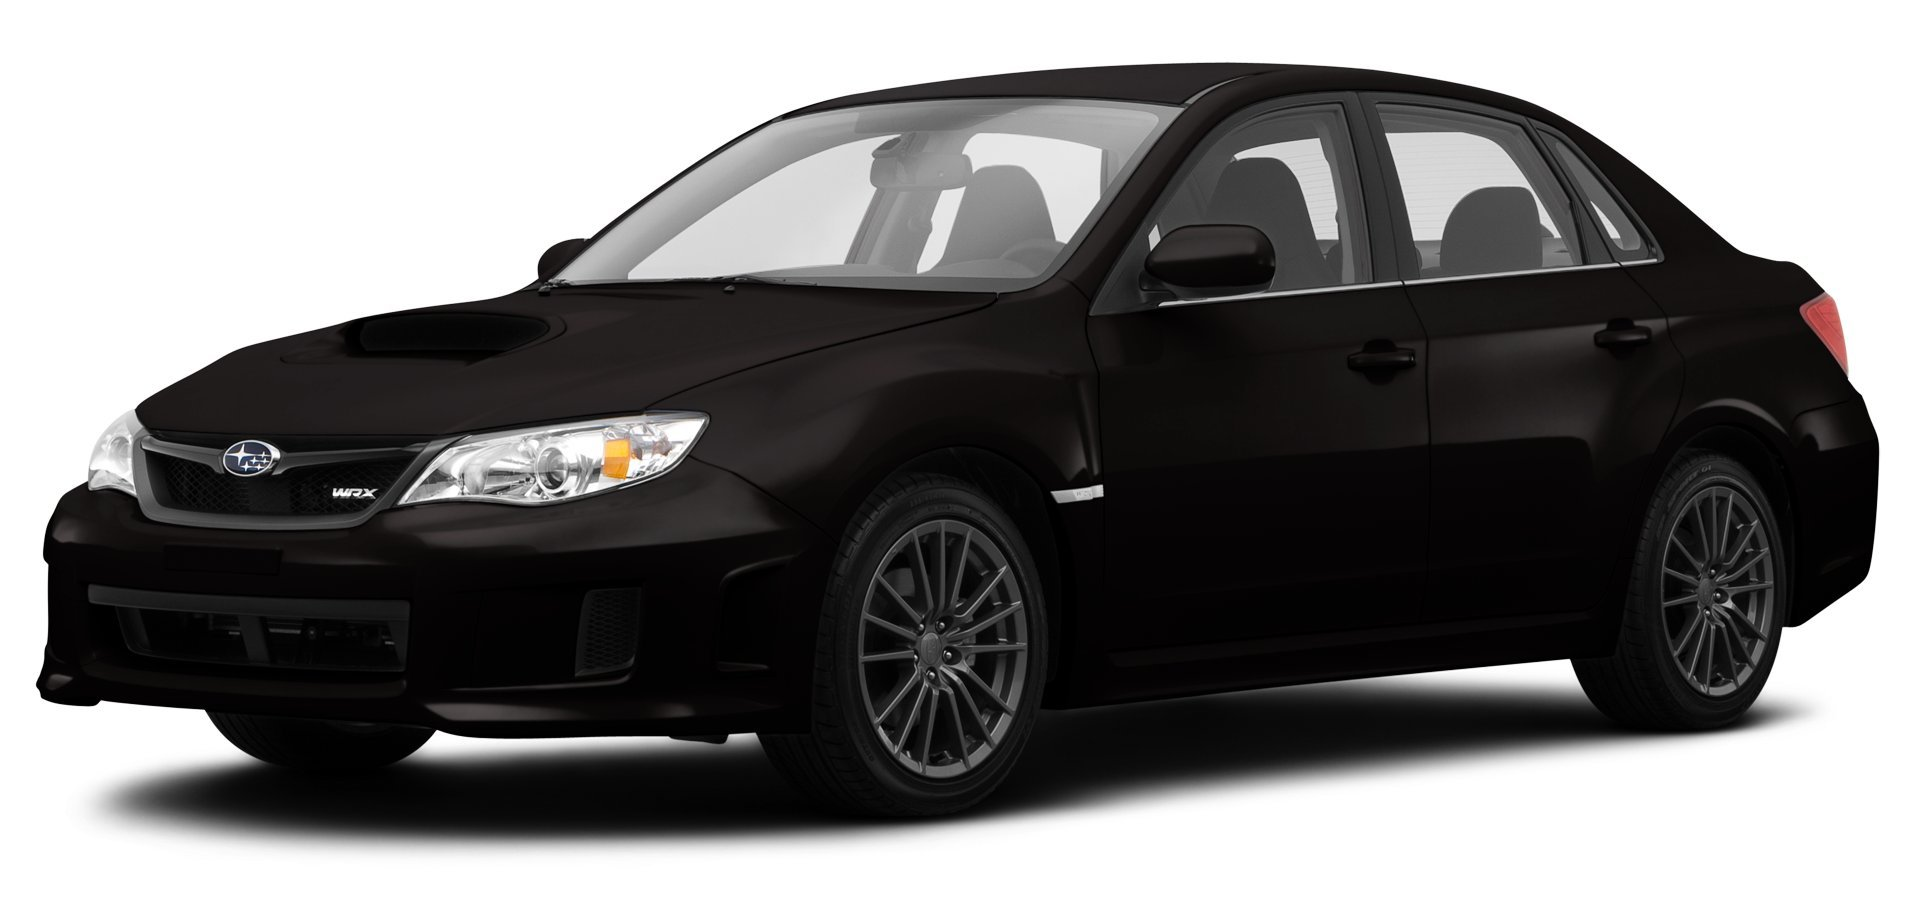 2014 Subaru Impreza Reviews Images And Specs Vehicles Alternator Wiring Diagram Wrx 4 Door Manual Transmission